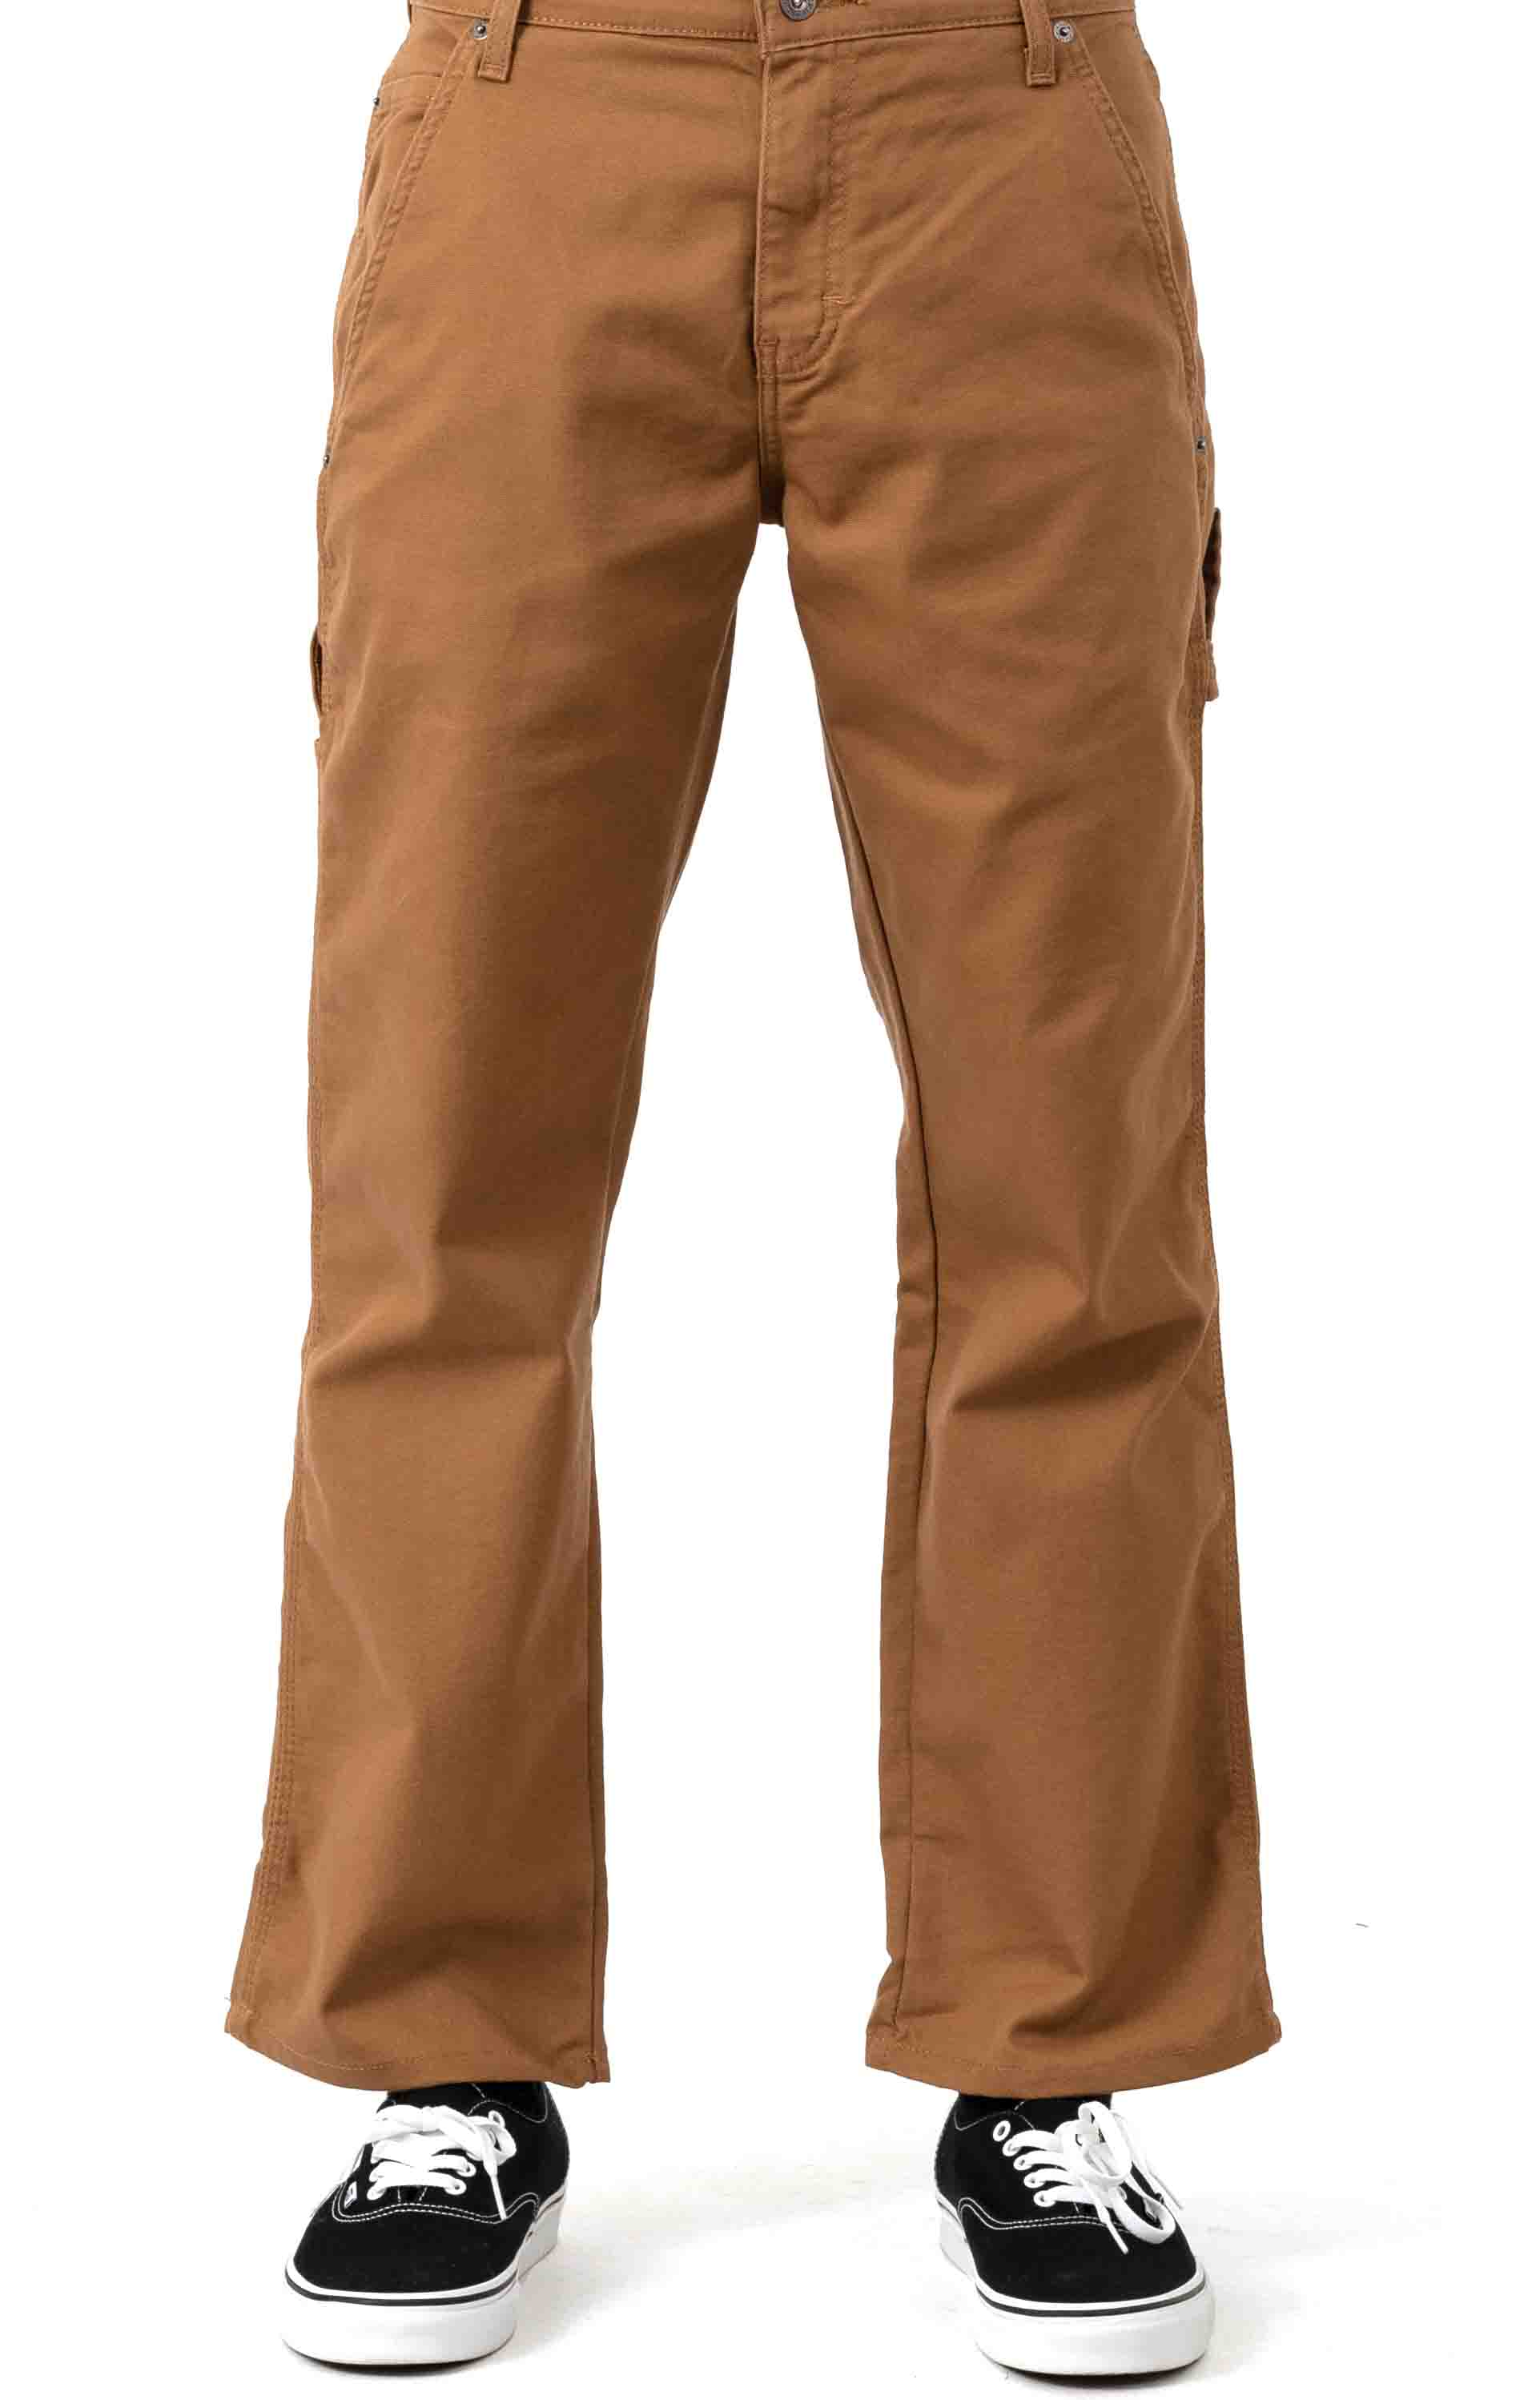 (DP901SBD) FLEX Relaxed Fit Tough Max Duck Carpenter Pants - Stonewashed Brown Duck 2